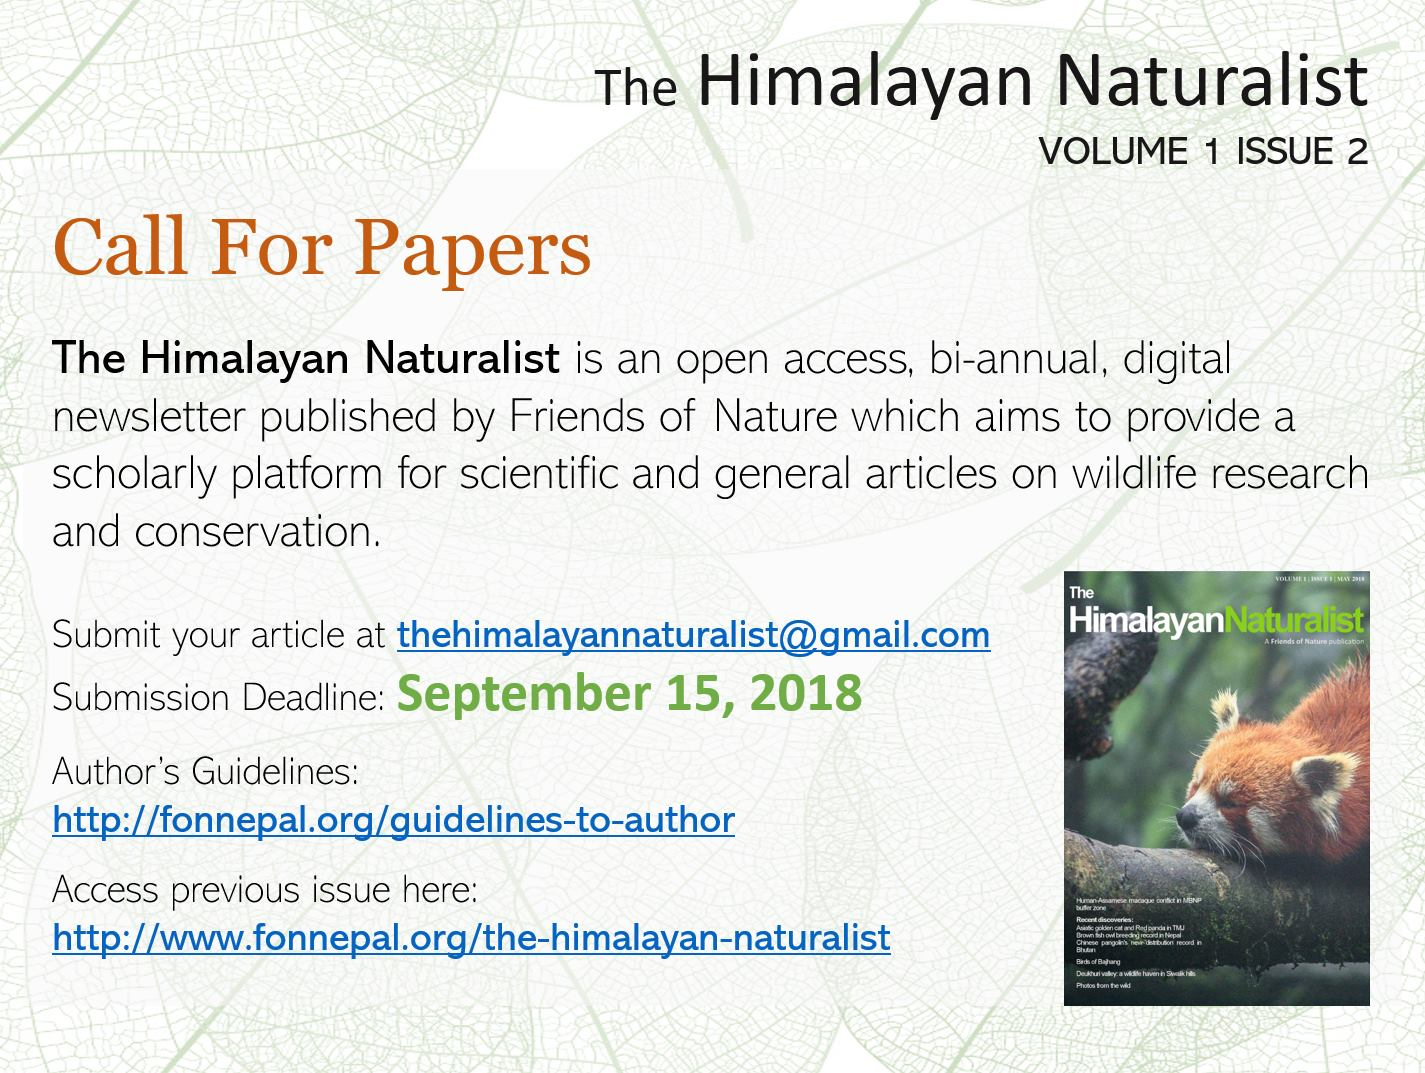 The Himalayan Naturalist Is An Open Access Bi Annual Digital Newsletter Published By Friends Of Nature Which Aims To Provide A Scholarly Platform For